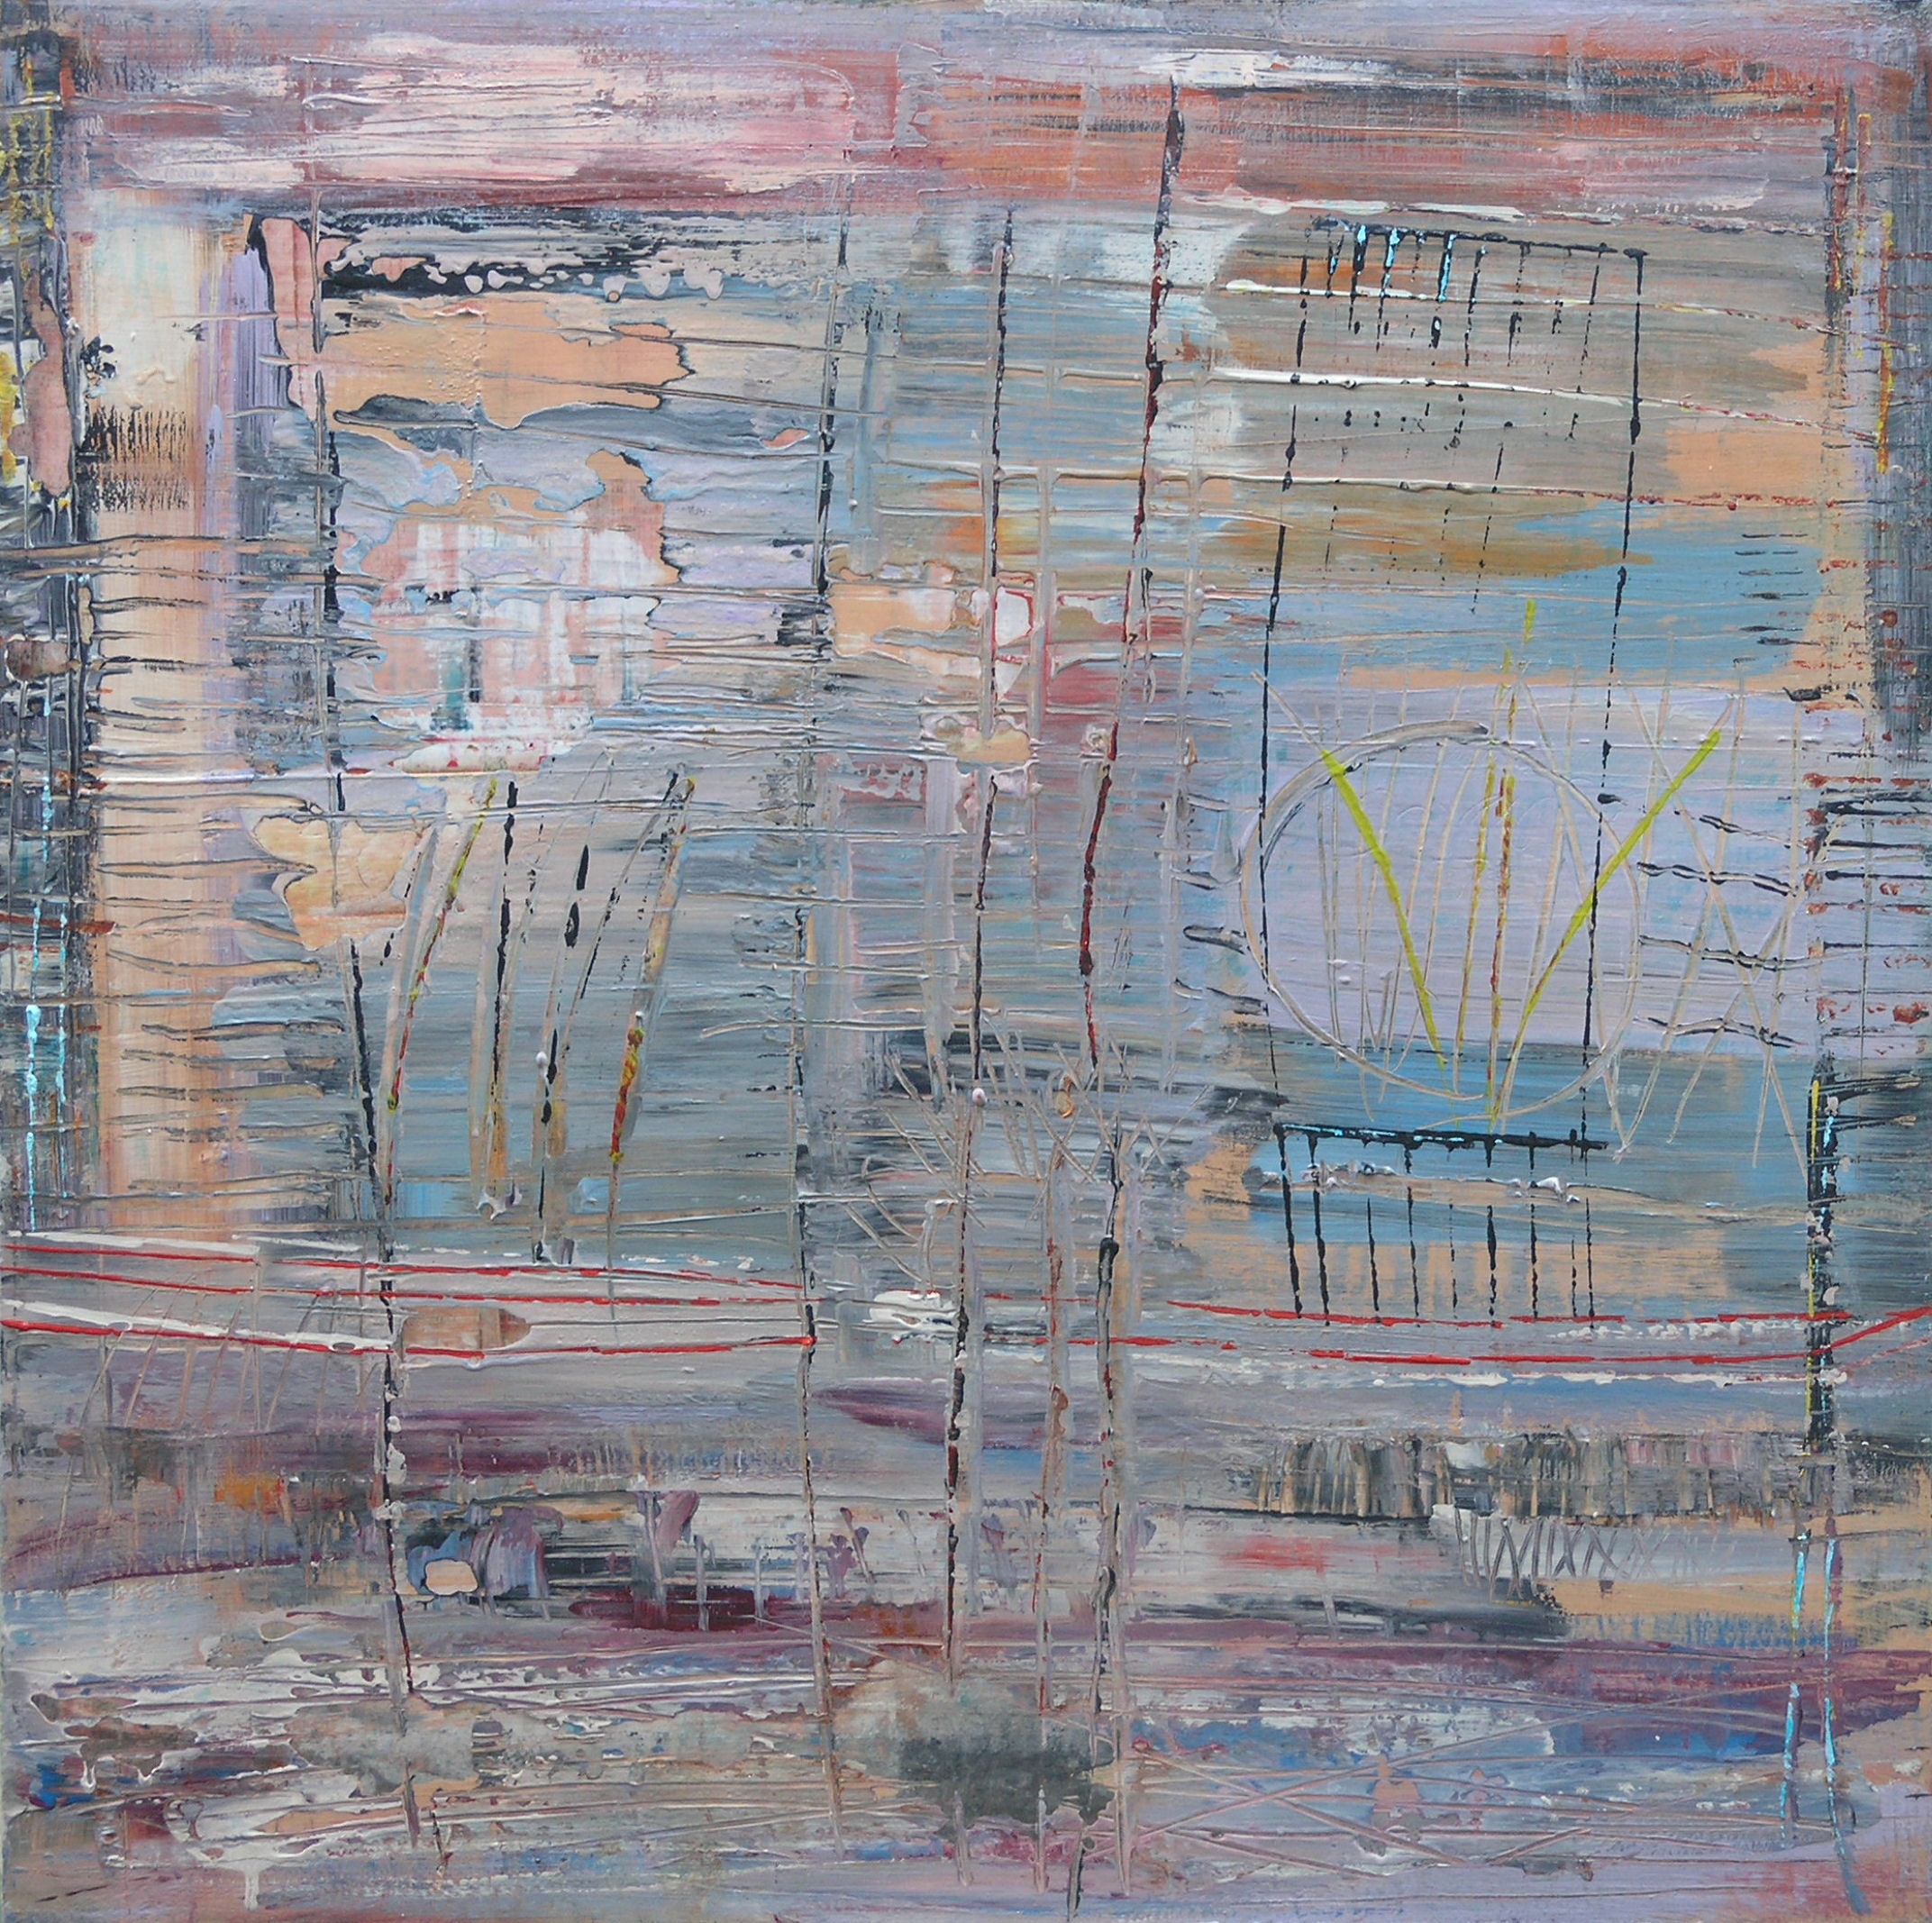 "7th Dimension , Loretta Kaltenhauser, 30"" x 30"", $1,375 CAD (Free shipping, free returns, no additional costs. That's peace-of-mind art buying!)"